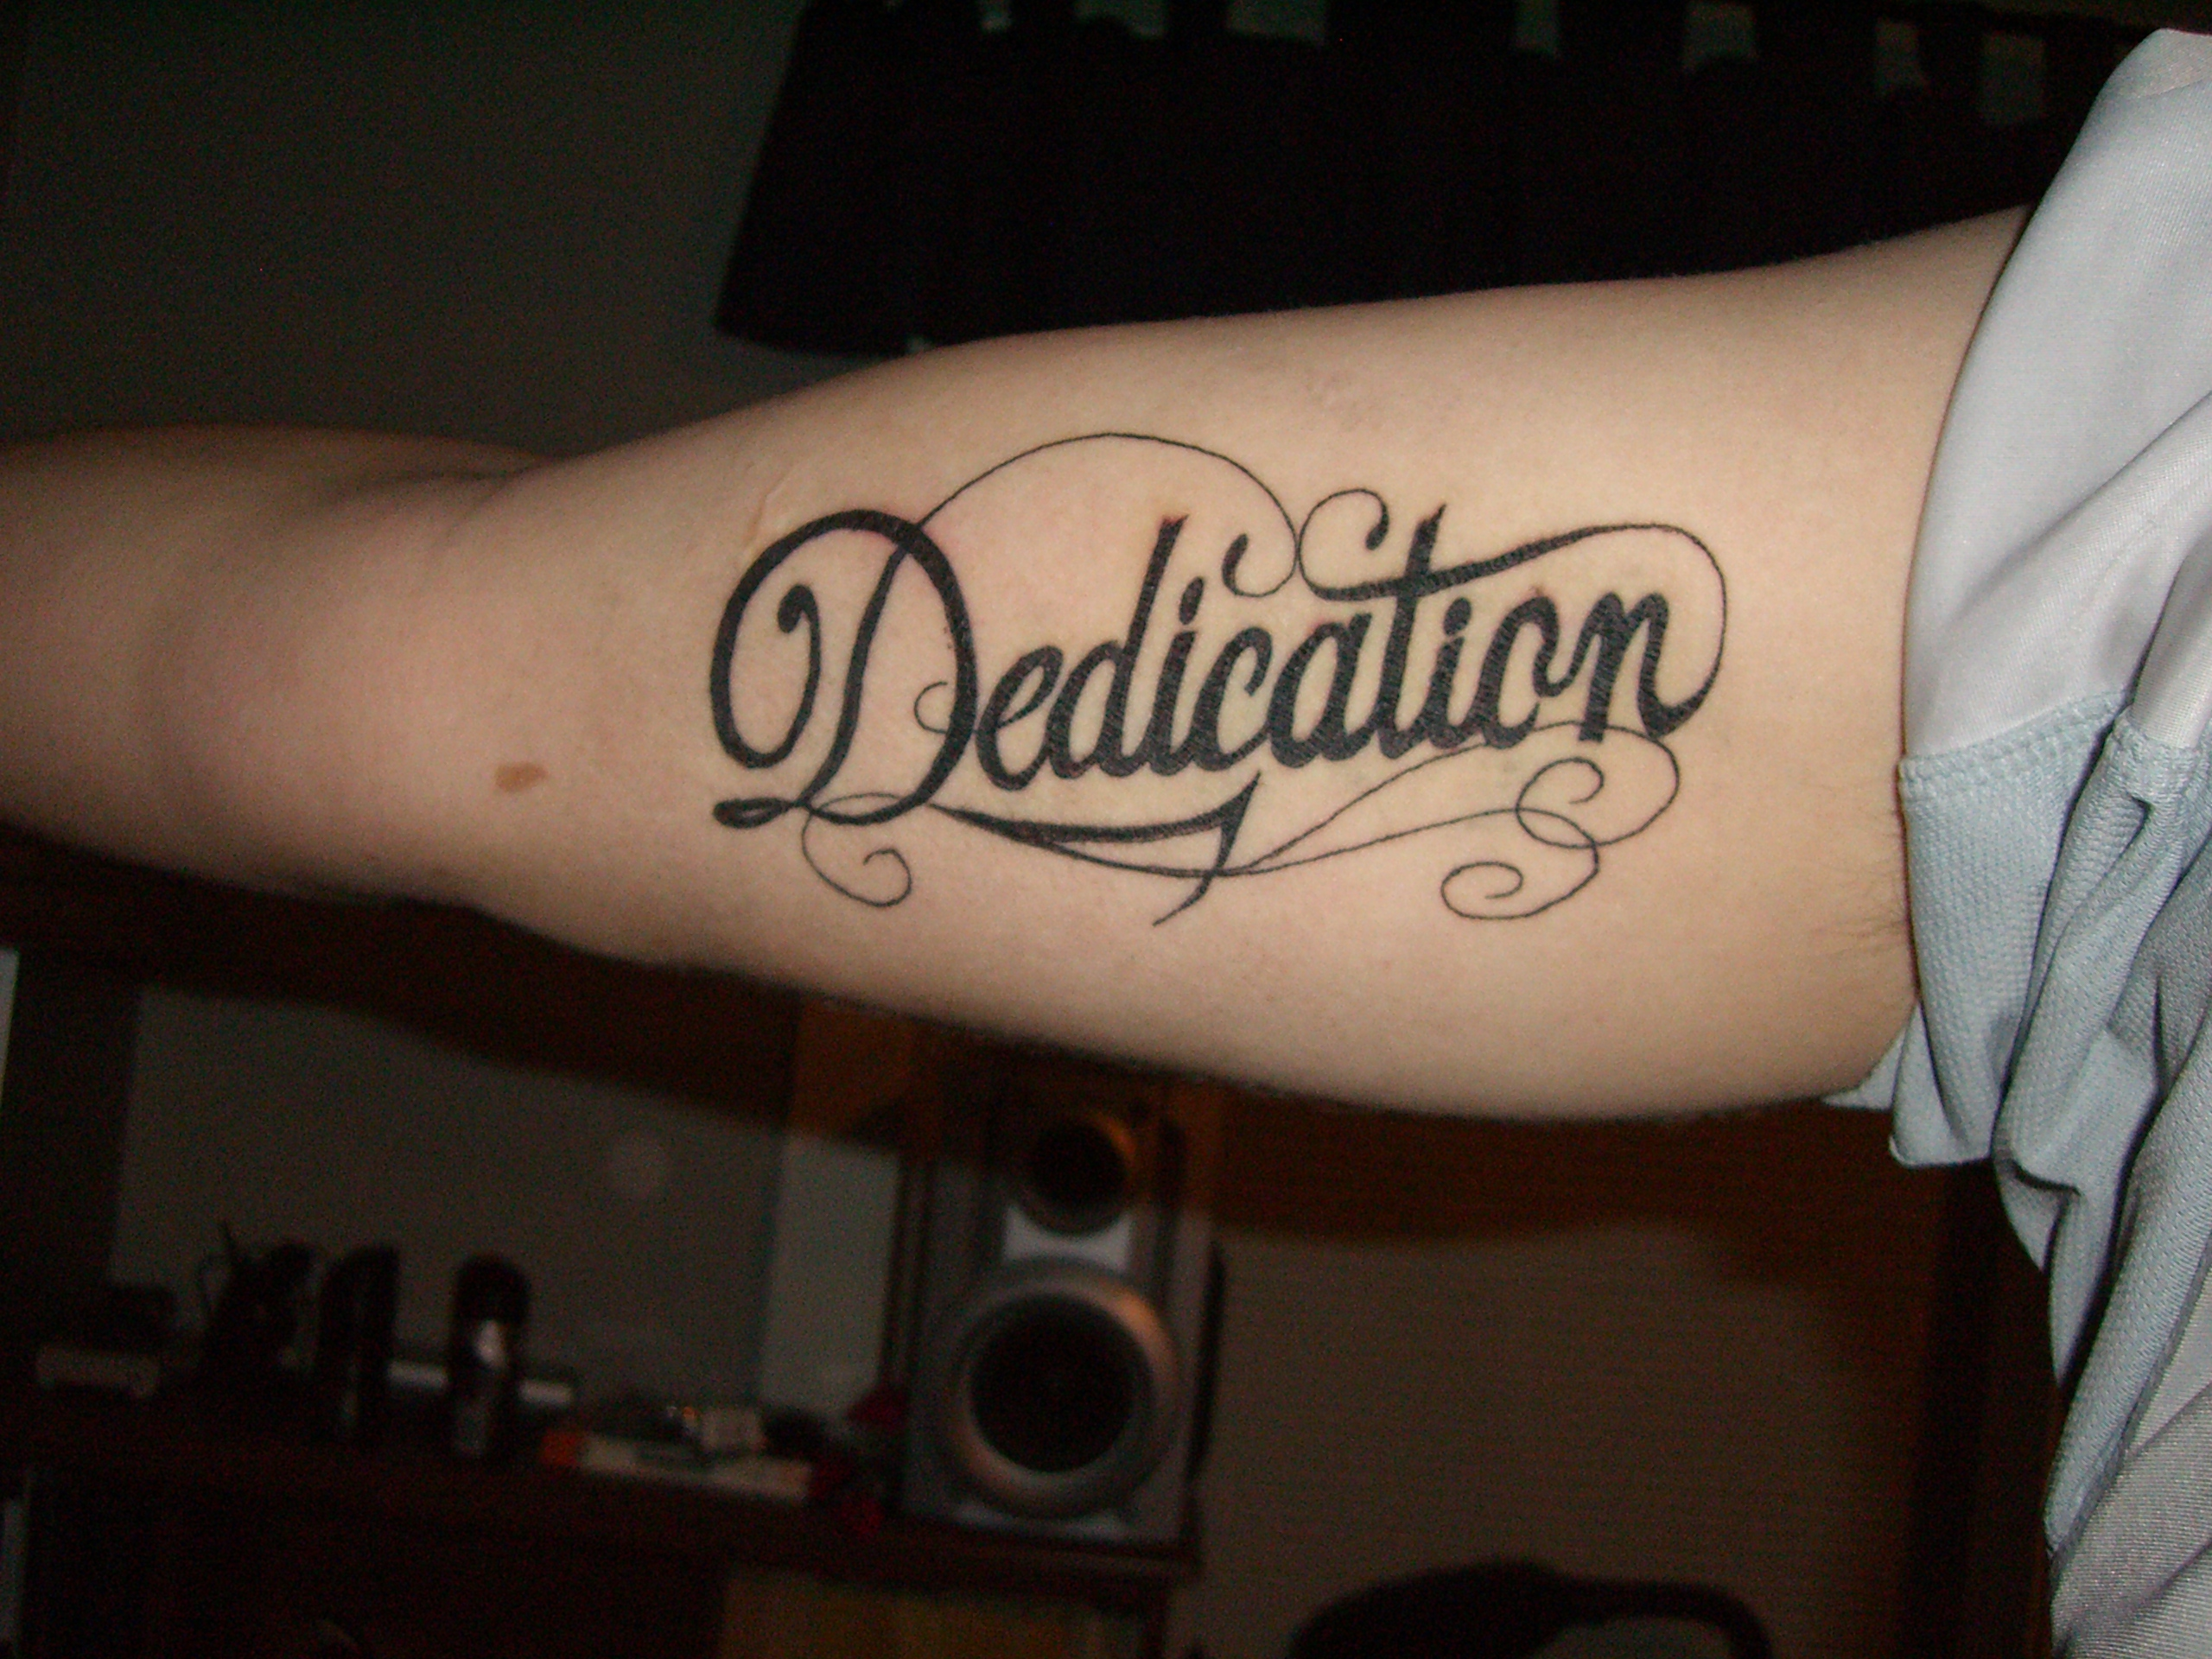 Dedication tattoo day 1